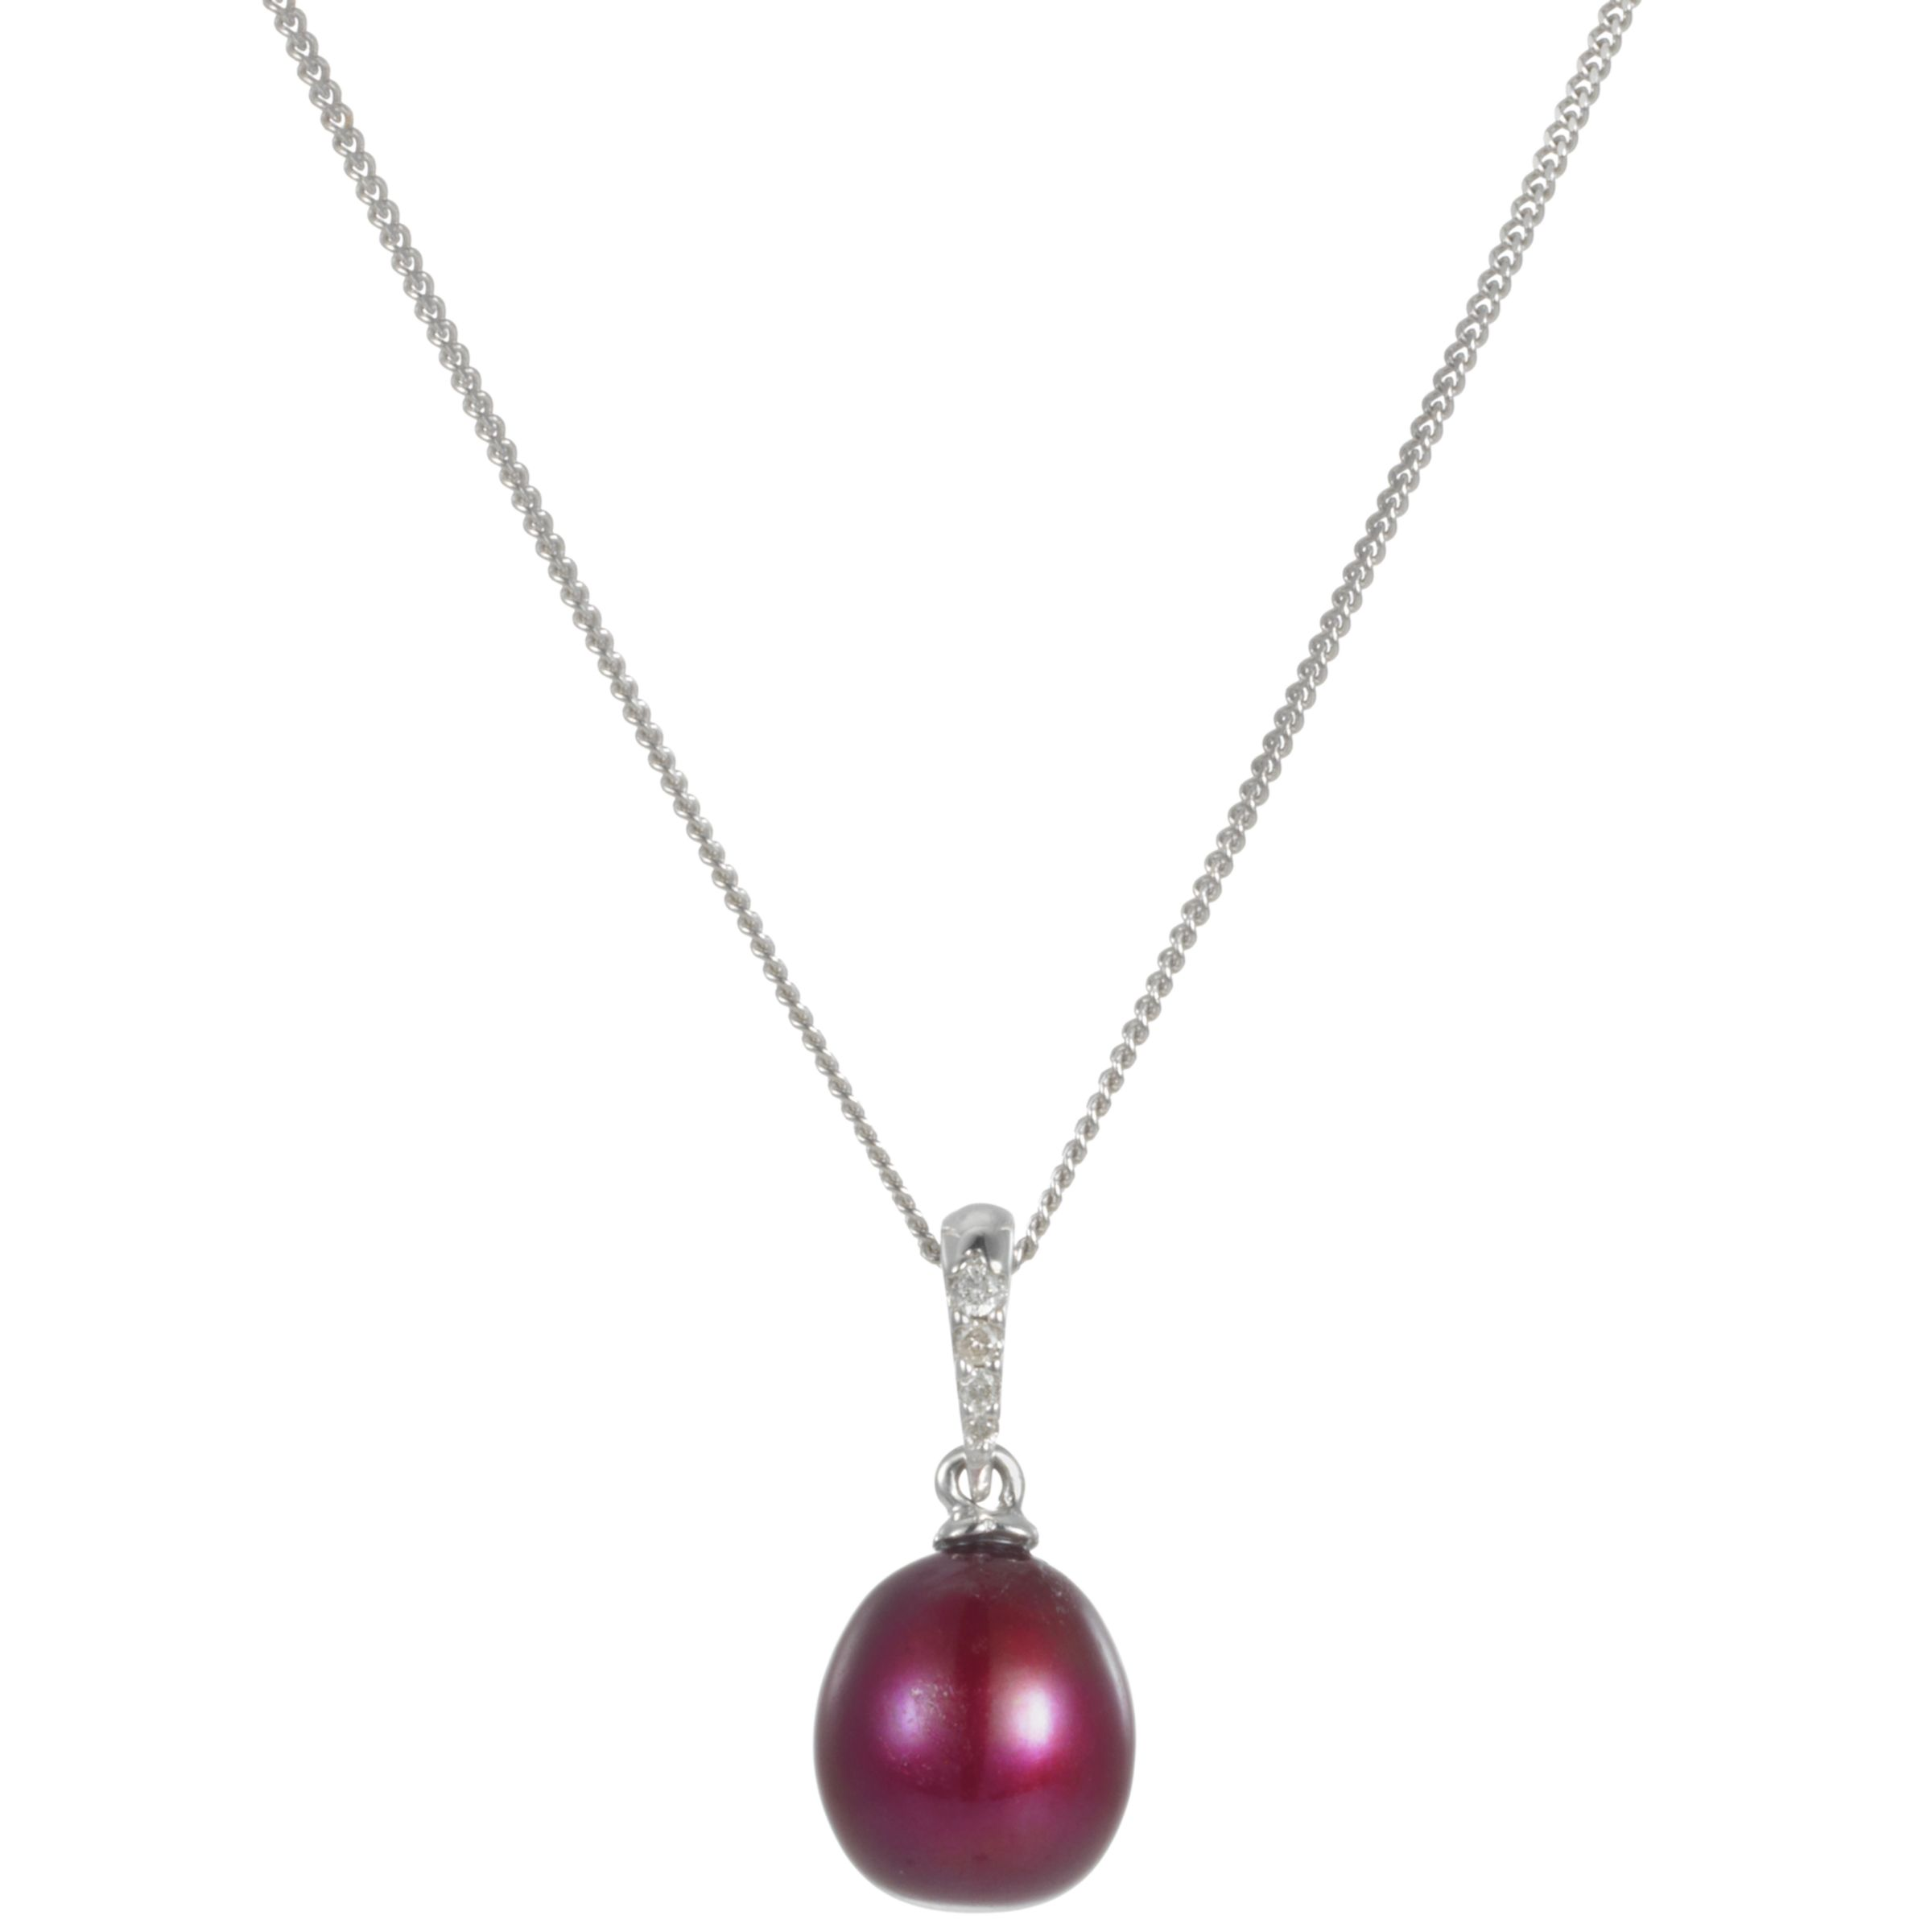 9ct White Gold Cranberry Freshwater Pearl and Diamond Pendant Necklace